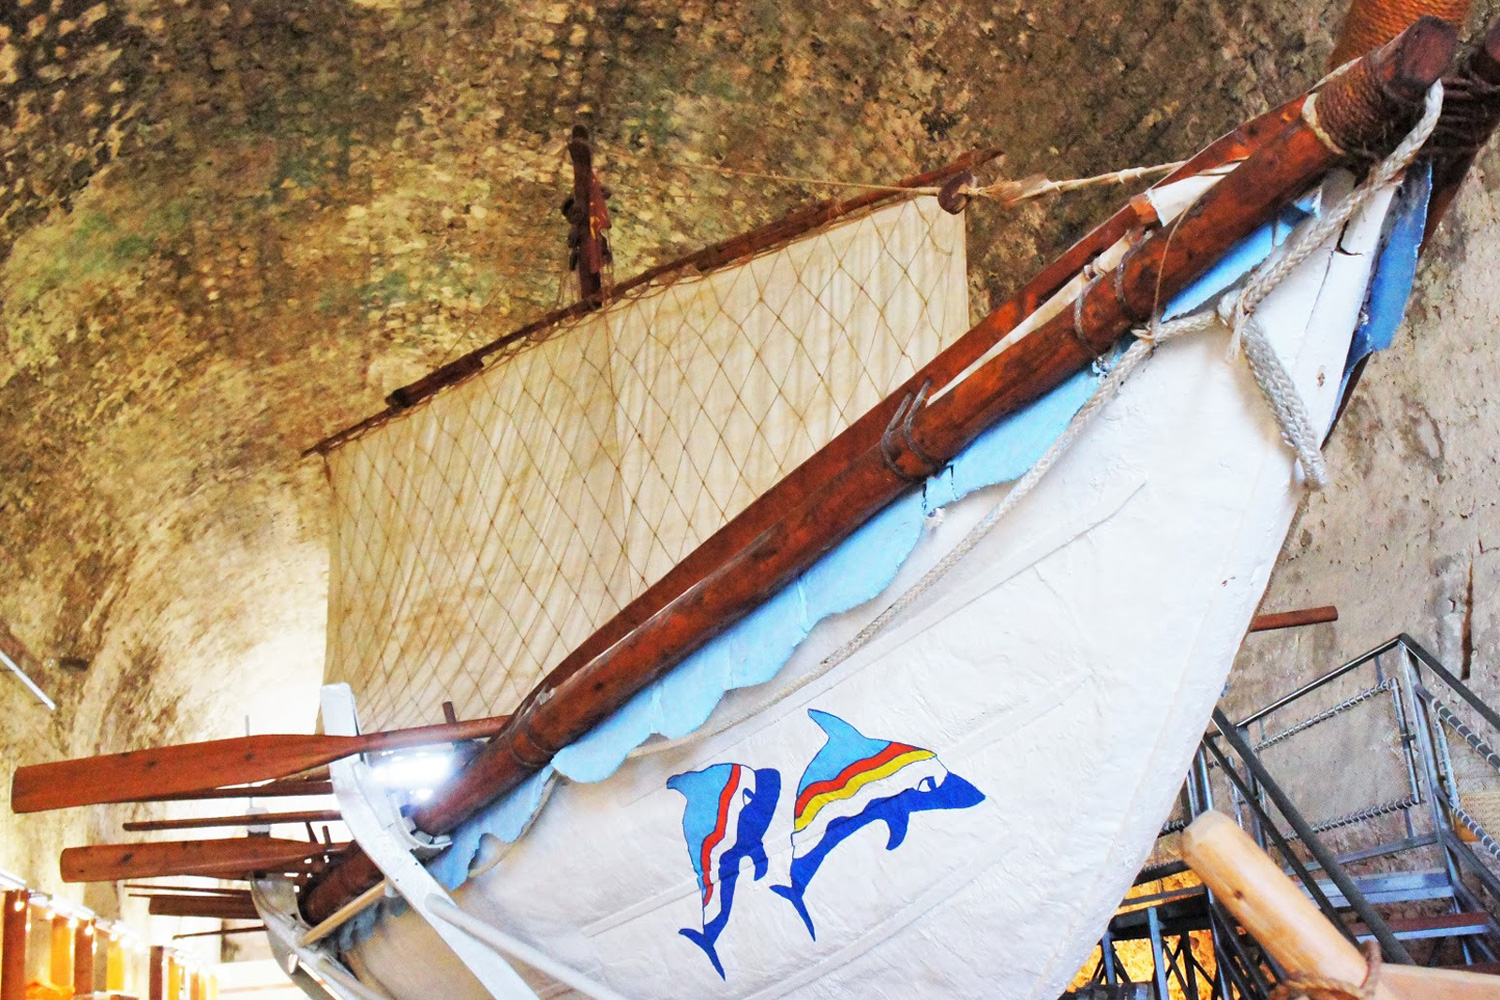 The Minoan Ship from below inside the storage room